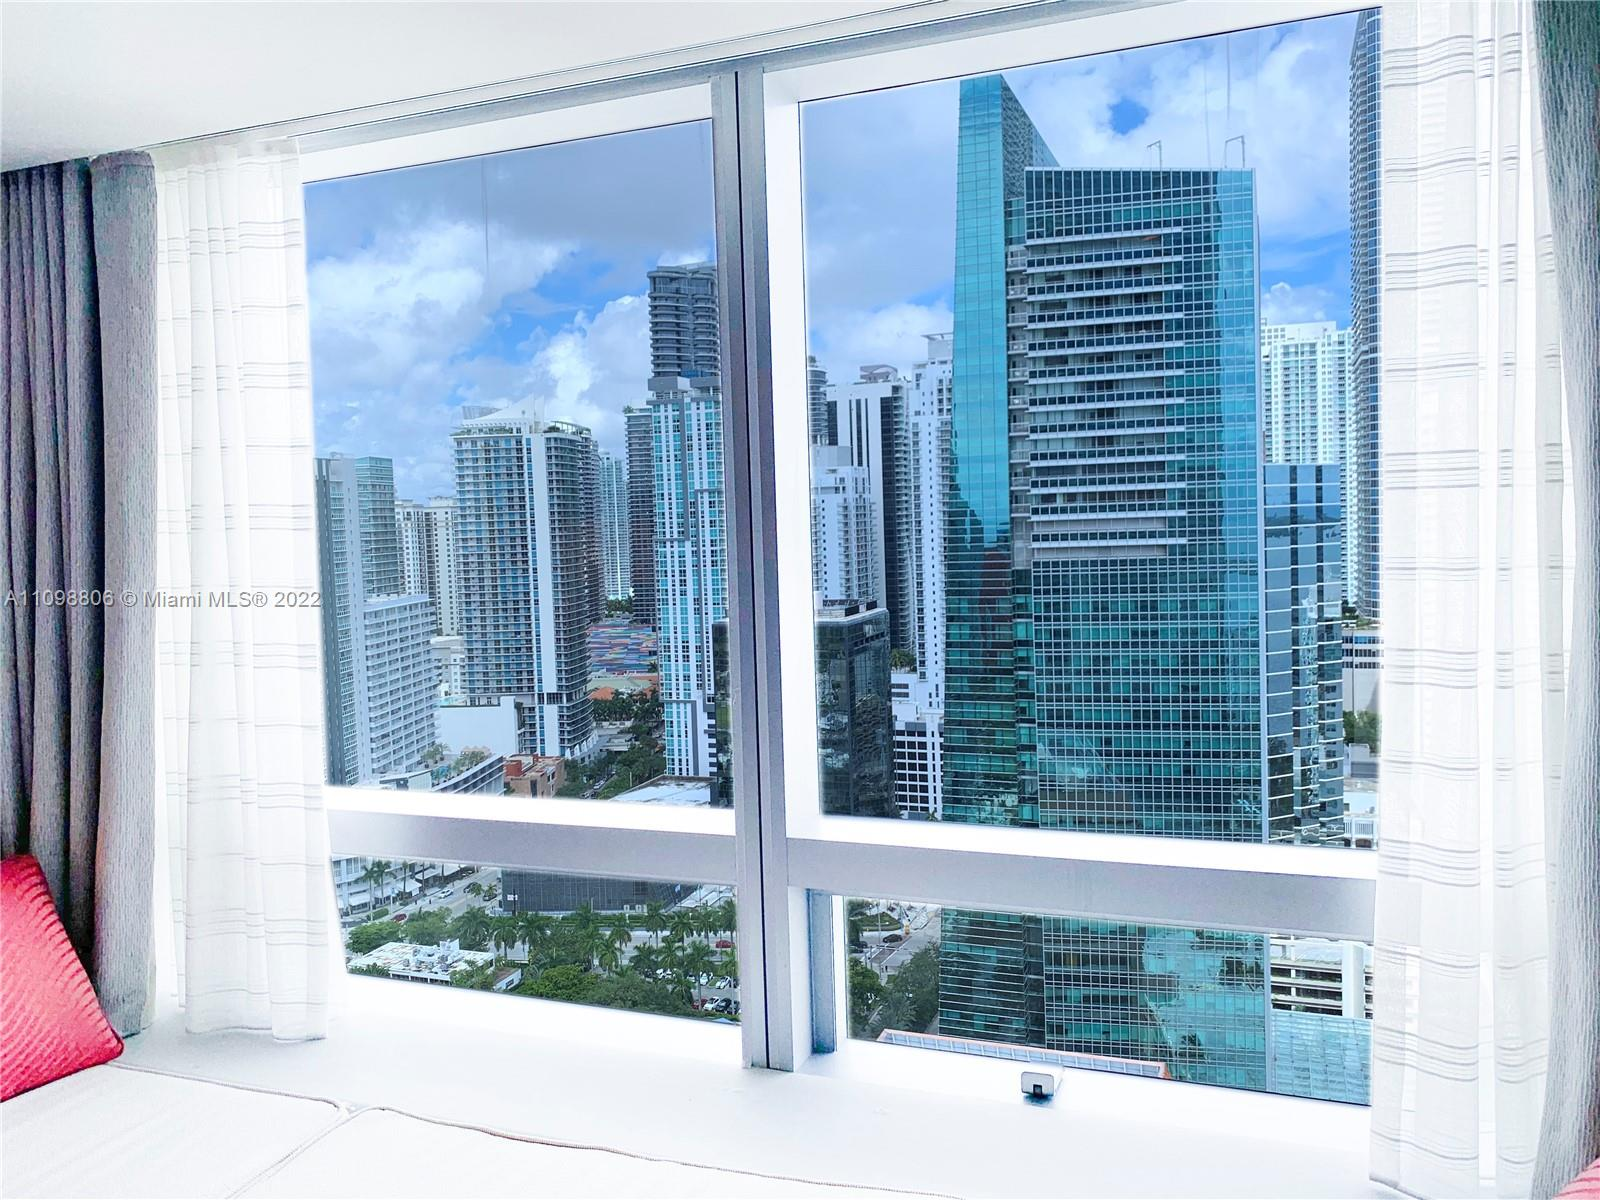 Stay in a 5 star apartment (1/1.5) in Four Seasons Brickell. Enjoy the luxury amenities and dinning inside the hotel and take a walk in the area.  The hotel / condo has two incredible pools with private cabanas, a spa, and delicious restaurants.  Rates may vary depending on the season and the lenght of the stay. MIN LENGHT STAY: 1 WEEK MAX LENGHT STAY: 3 MONTHS  Showings available with notice of 84 hrs in advance.